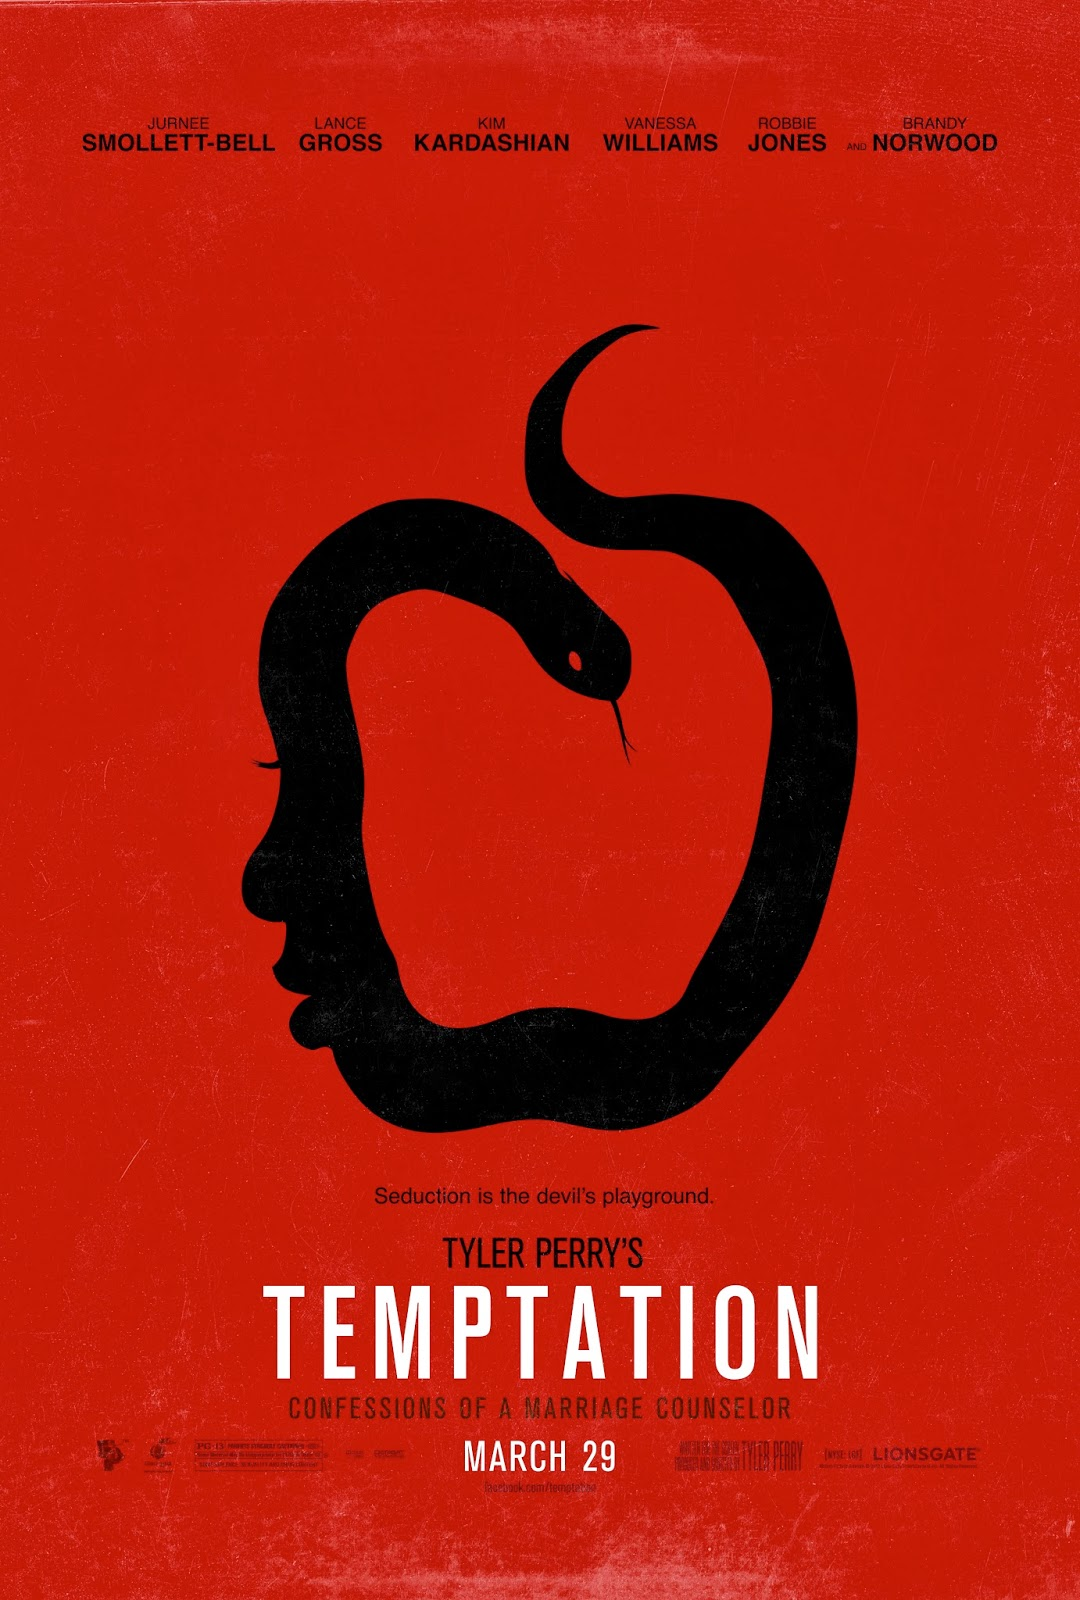 Temptation confessions of a marriage counselor 2013 poster